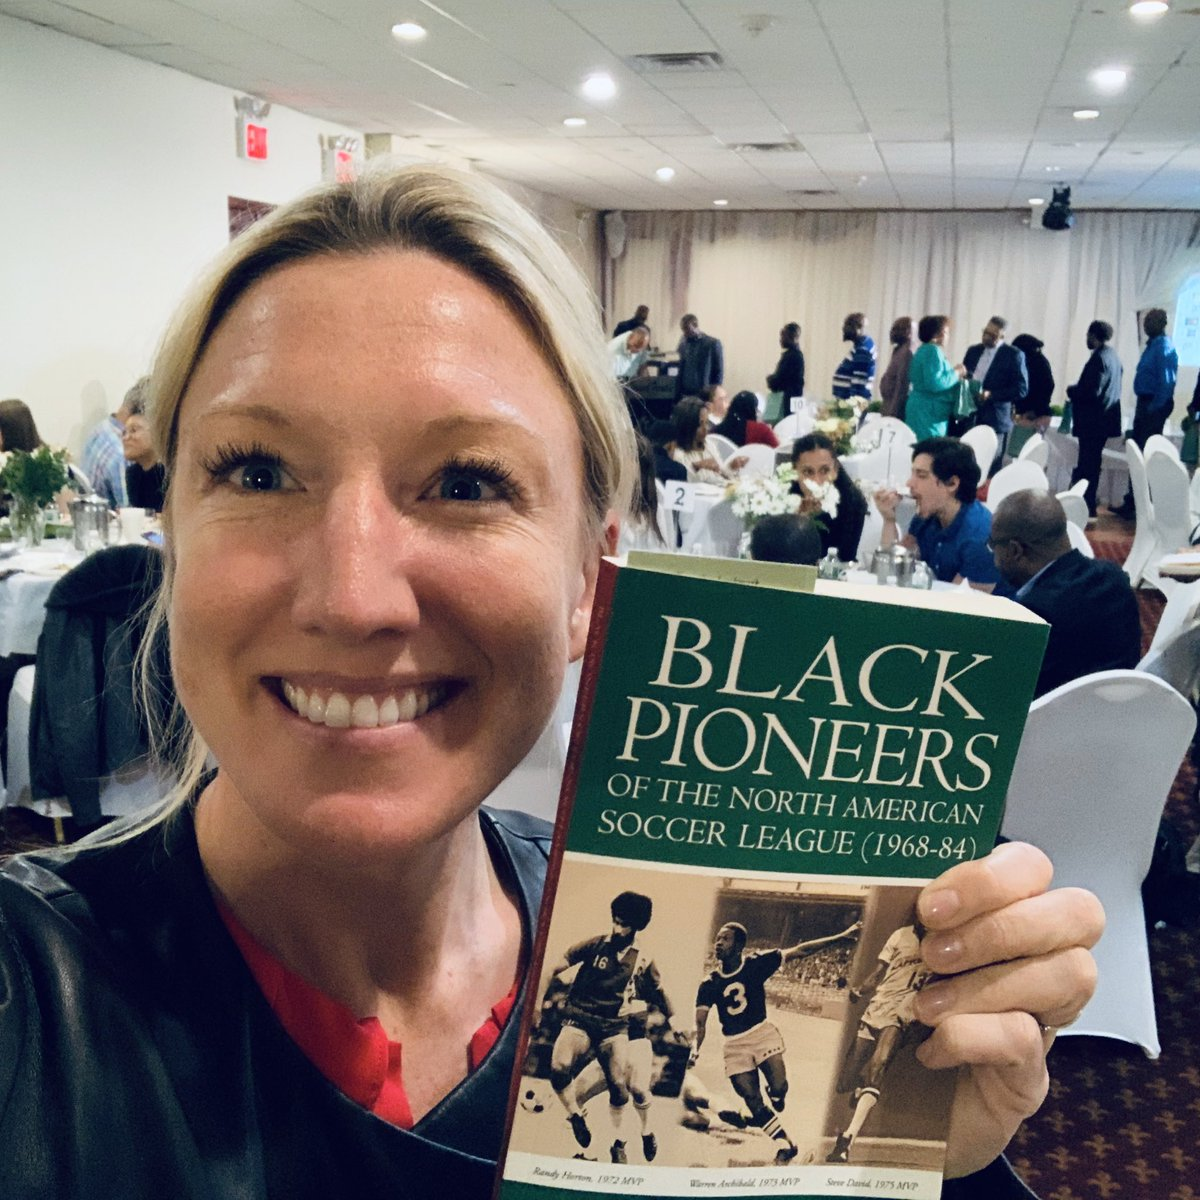 Congrats to Patrick Horne on his book, Black Pioneers of the NASL (1968-84). Thanks for an inspiring event with so many legends of the game... I learned, laughed, met amazing people, and of course, bought my copy! Proud to rep @UnitedCoaches x